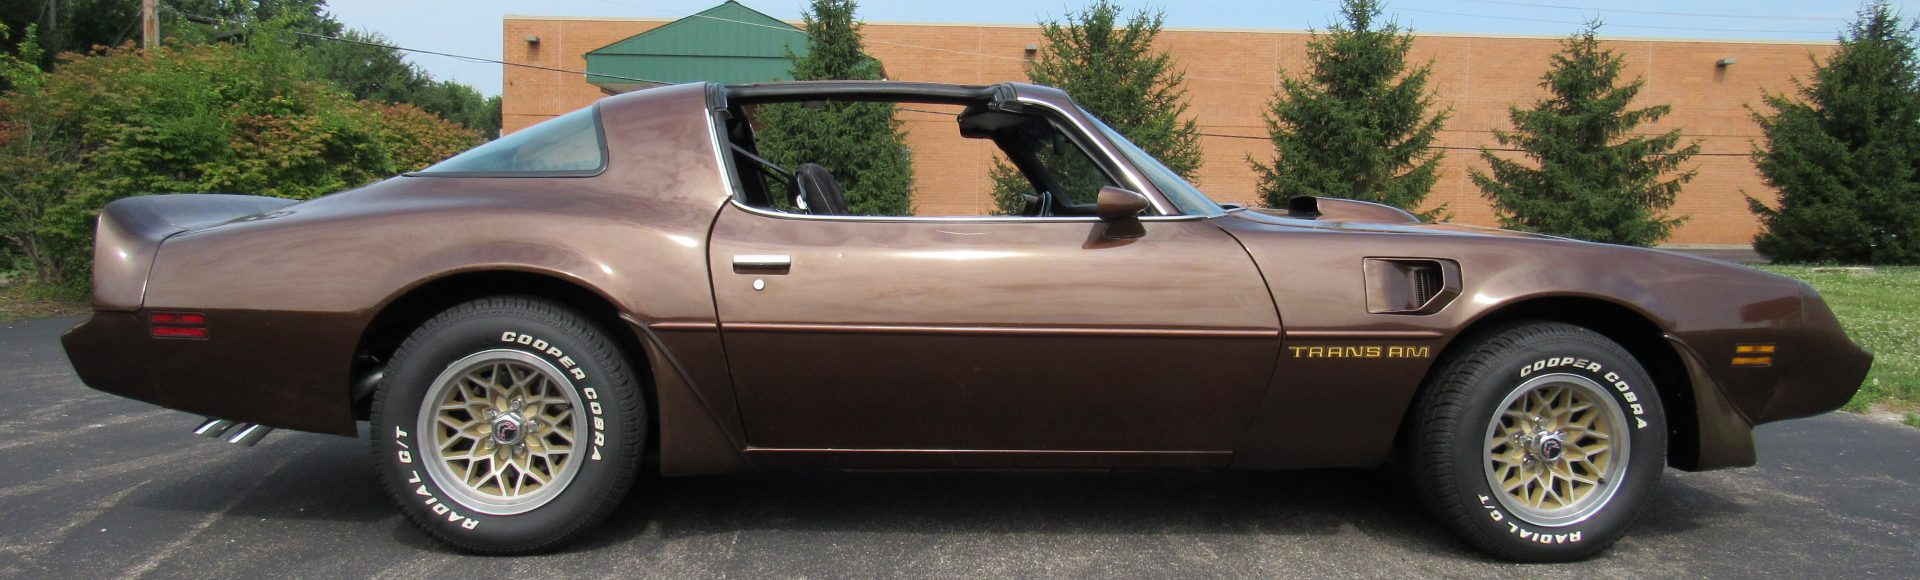 1979 Pontiac Trans Am, Auto, Built 350, $15,900